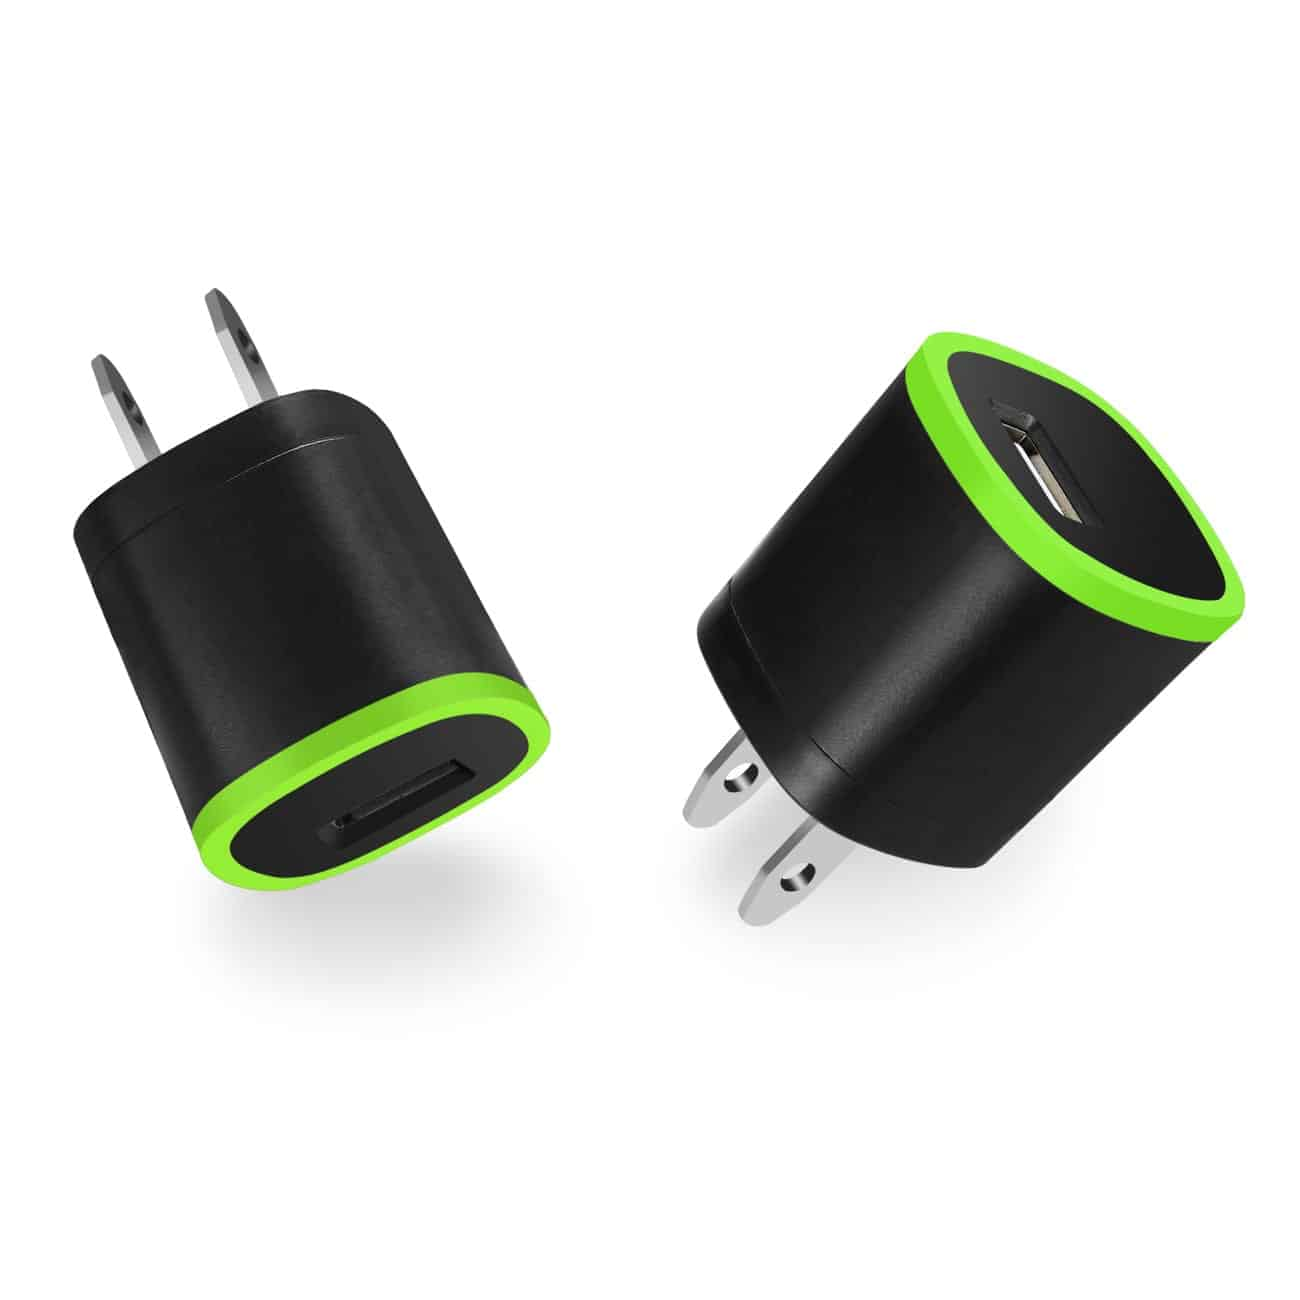 1 AMP DUAL COLOR PORTABLE USB TRAVEL ADAPTER CHARGER IN GREEN BLACK